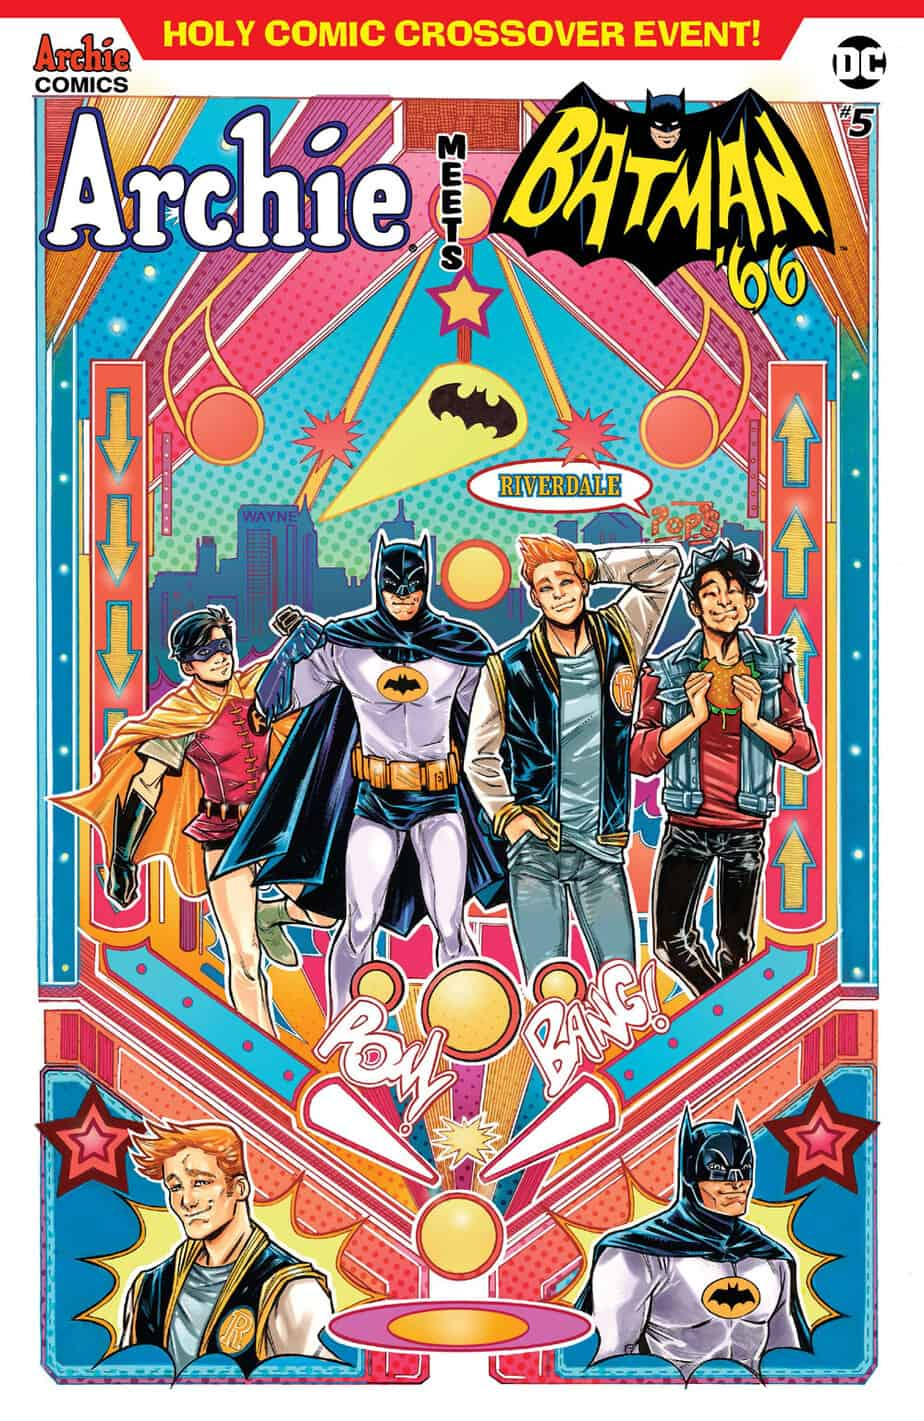 Archie Meets Batman '66 – Variant Cover by Laura Braga